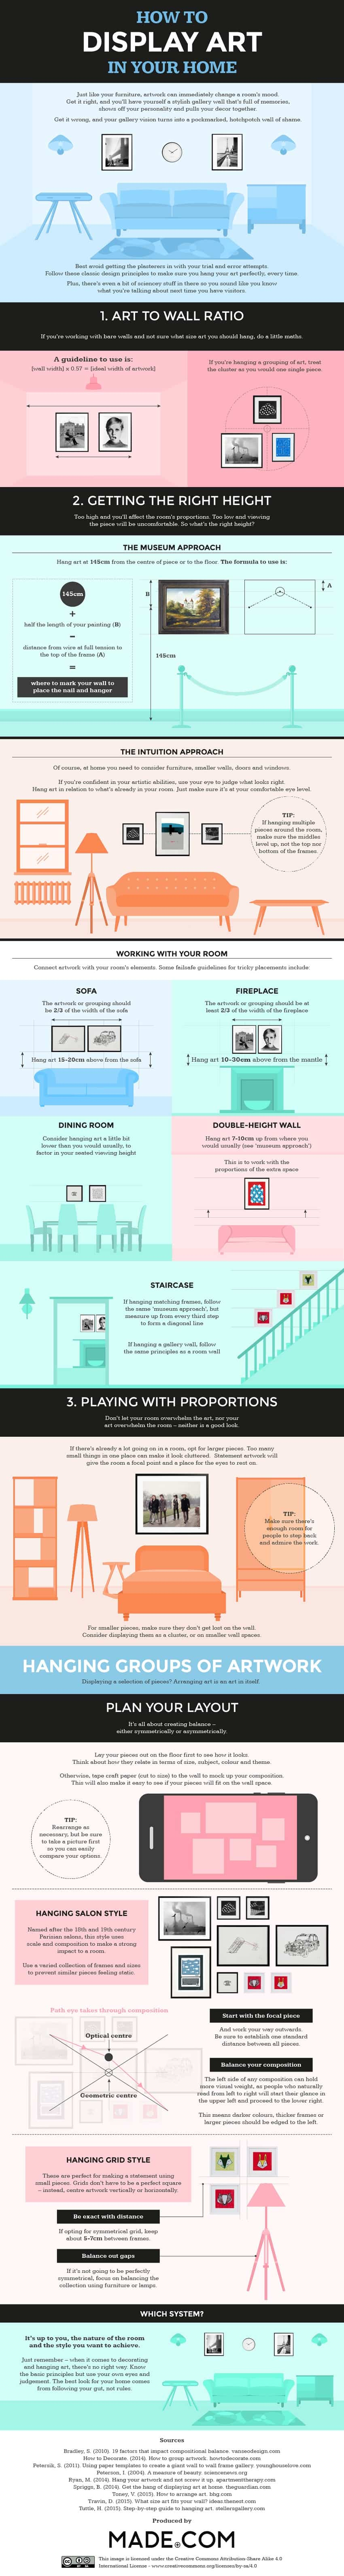 22-How-to-display-art-in-your-home